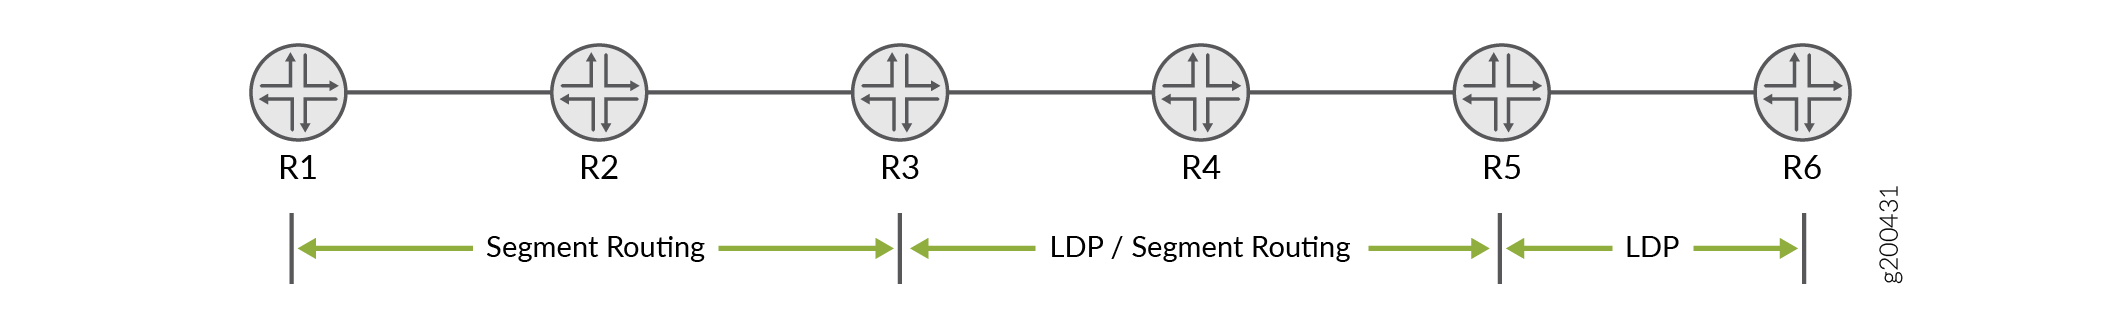 Sample LDP Topology with Interoperability of Segment Routing with LDP Using OSPF